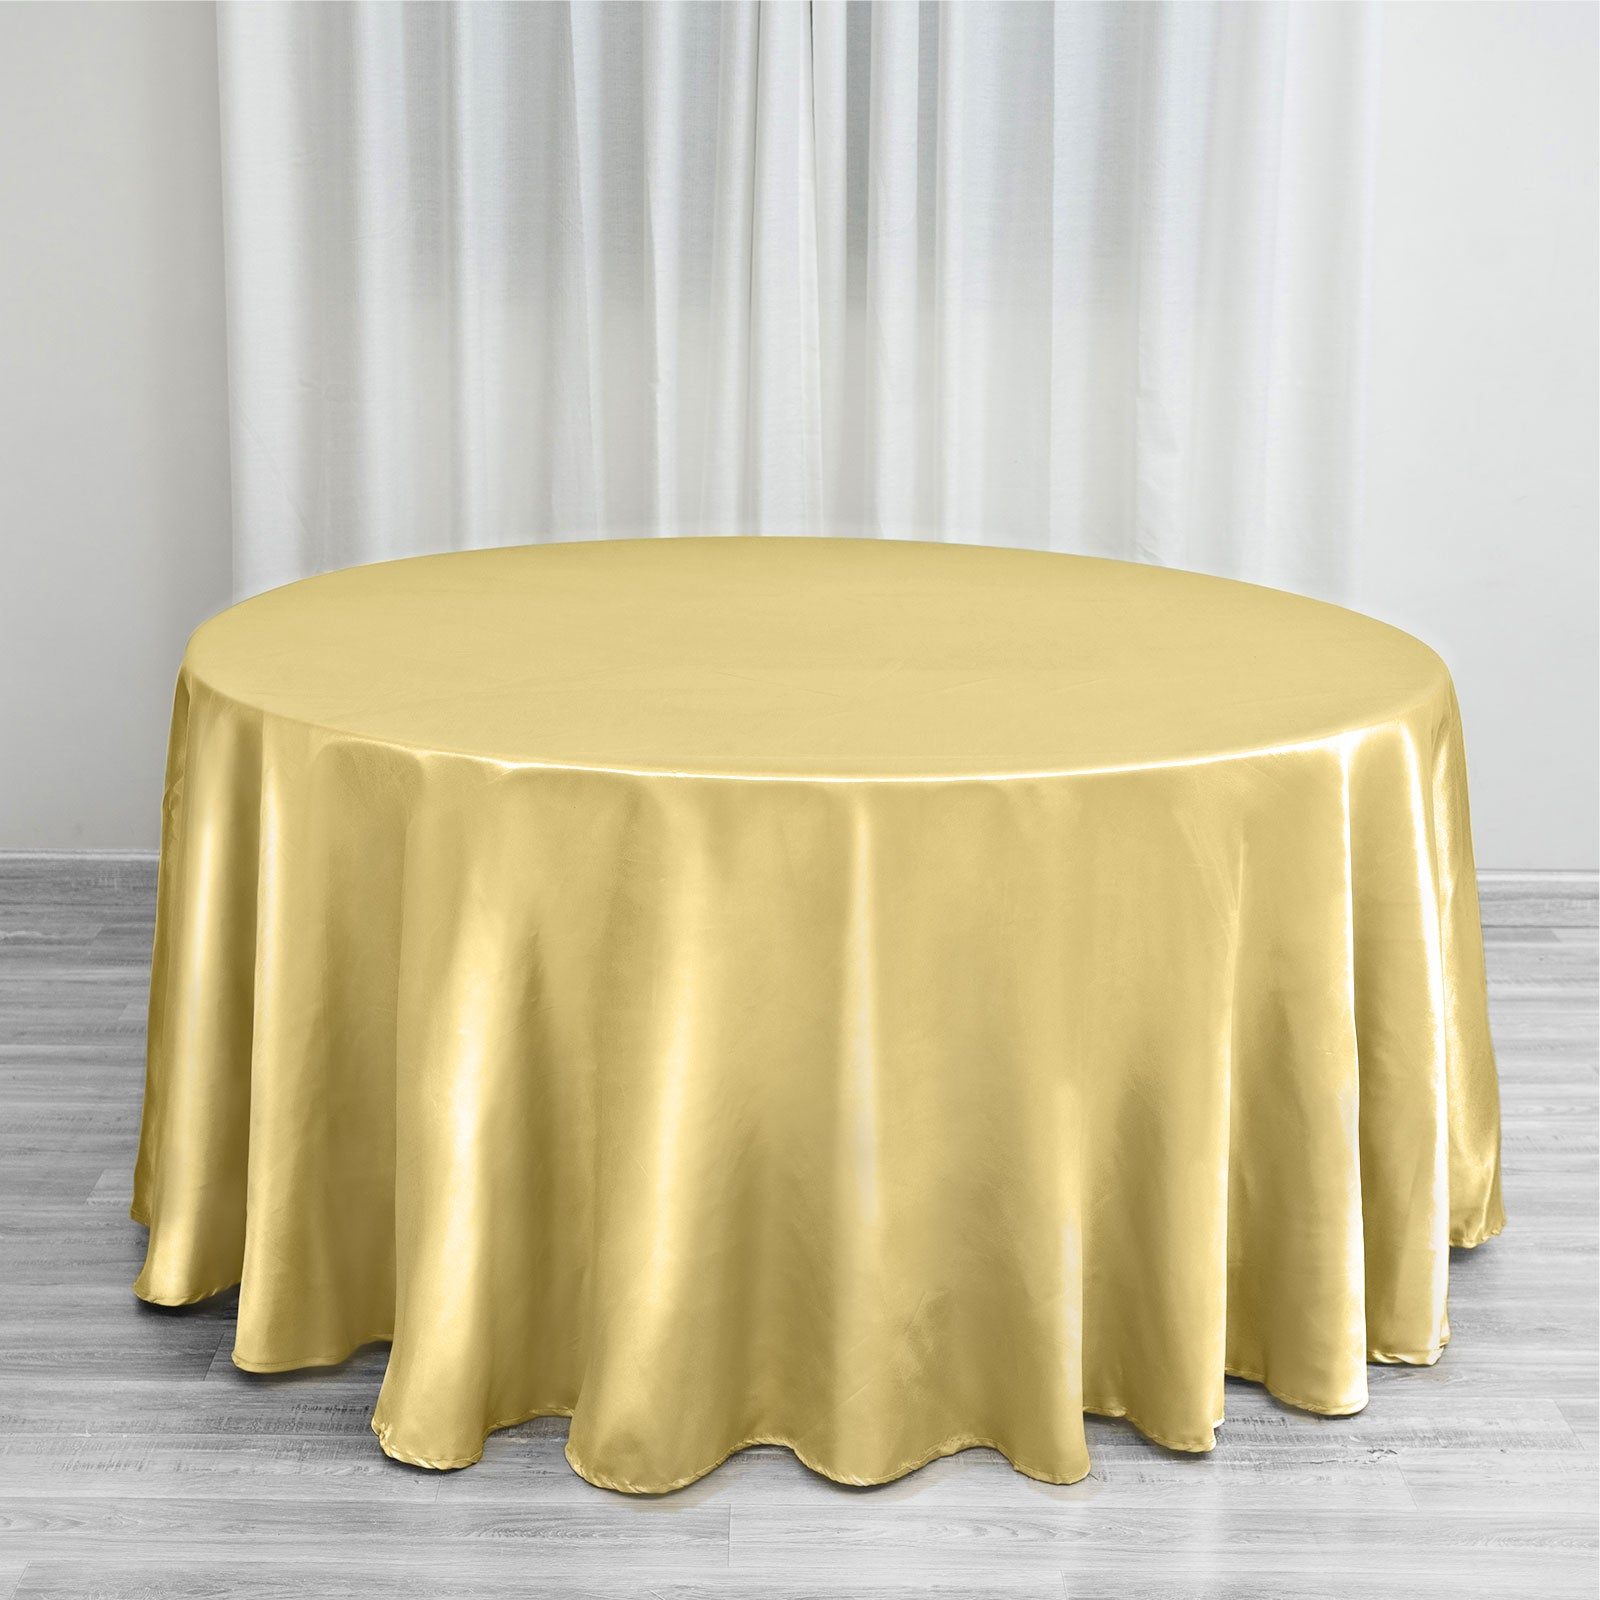 120 Quot Champagne Satin Round Tablecloth Efavormart